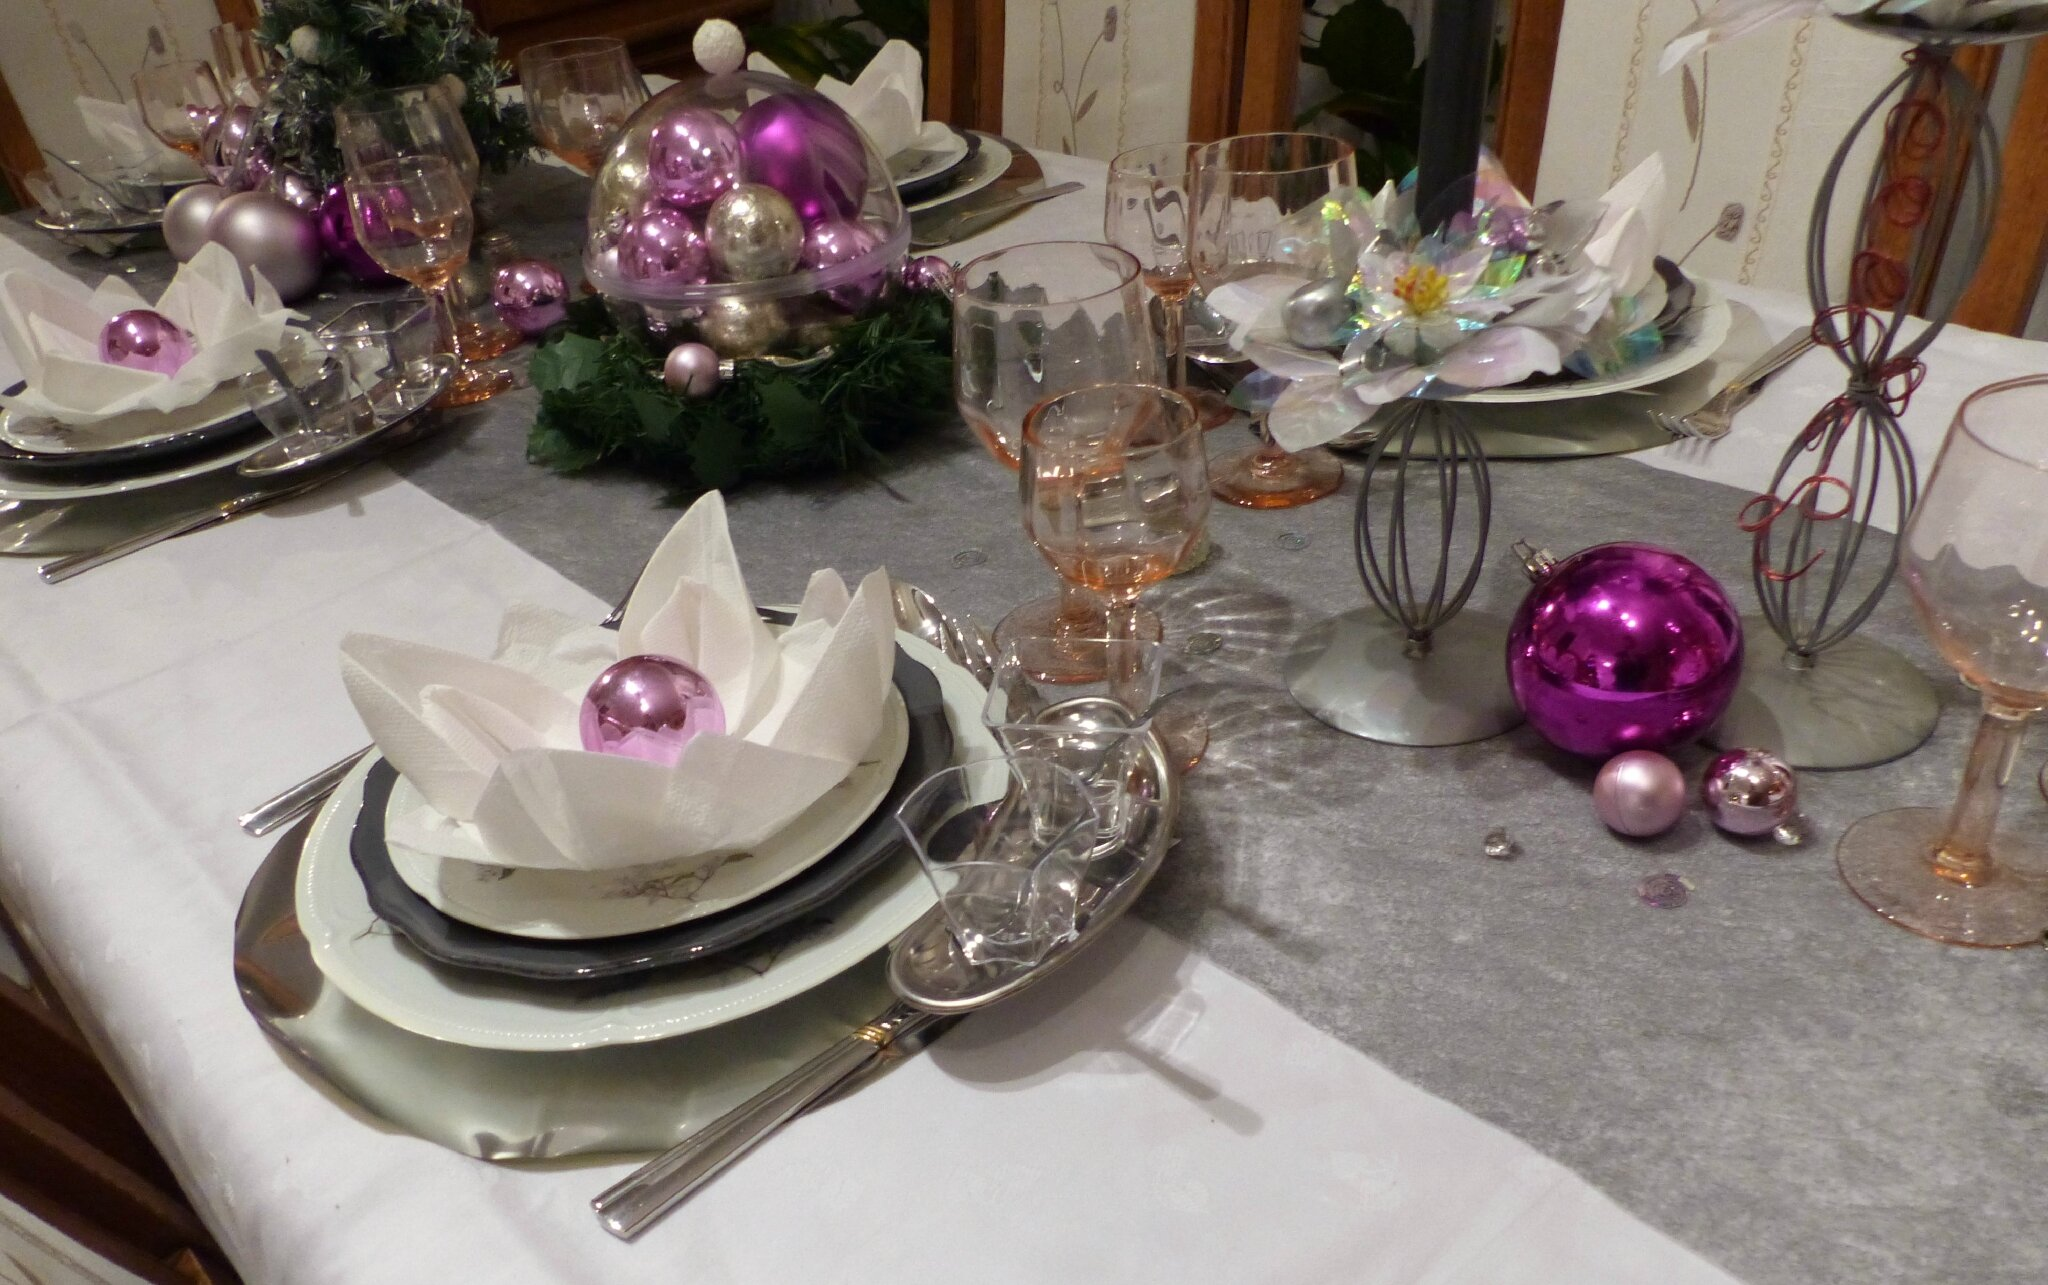 Table de no l rose et gris argent cuill re gourmande - Decoration de table de noel argent ...